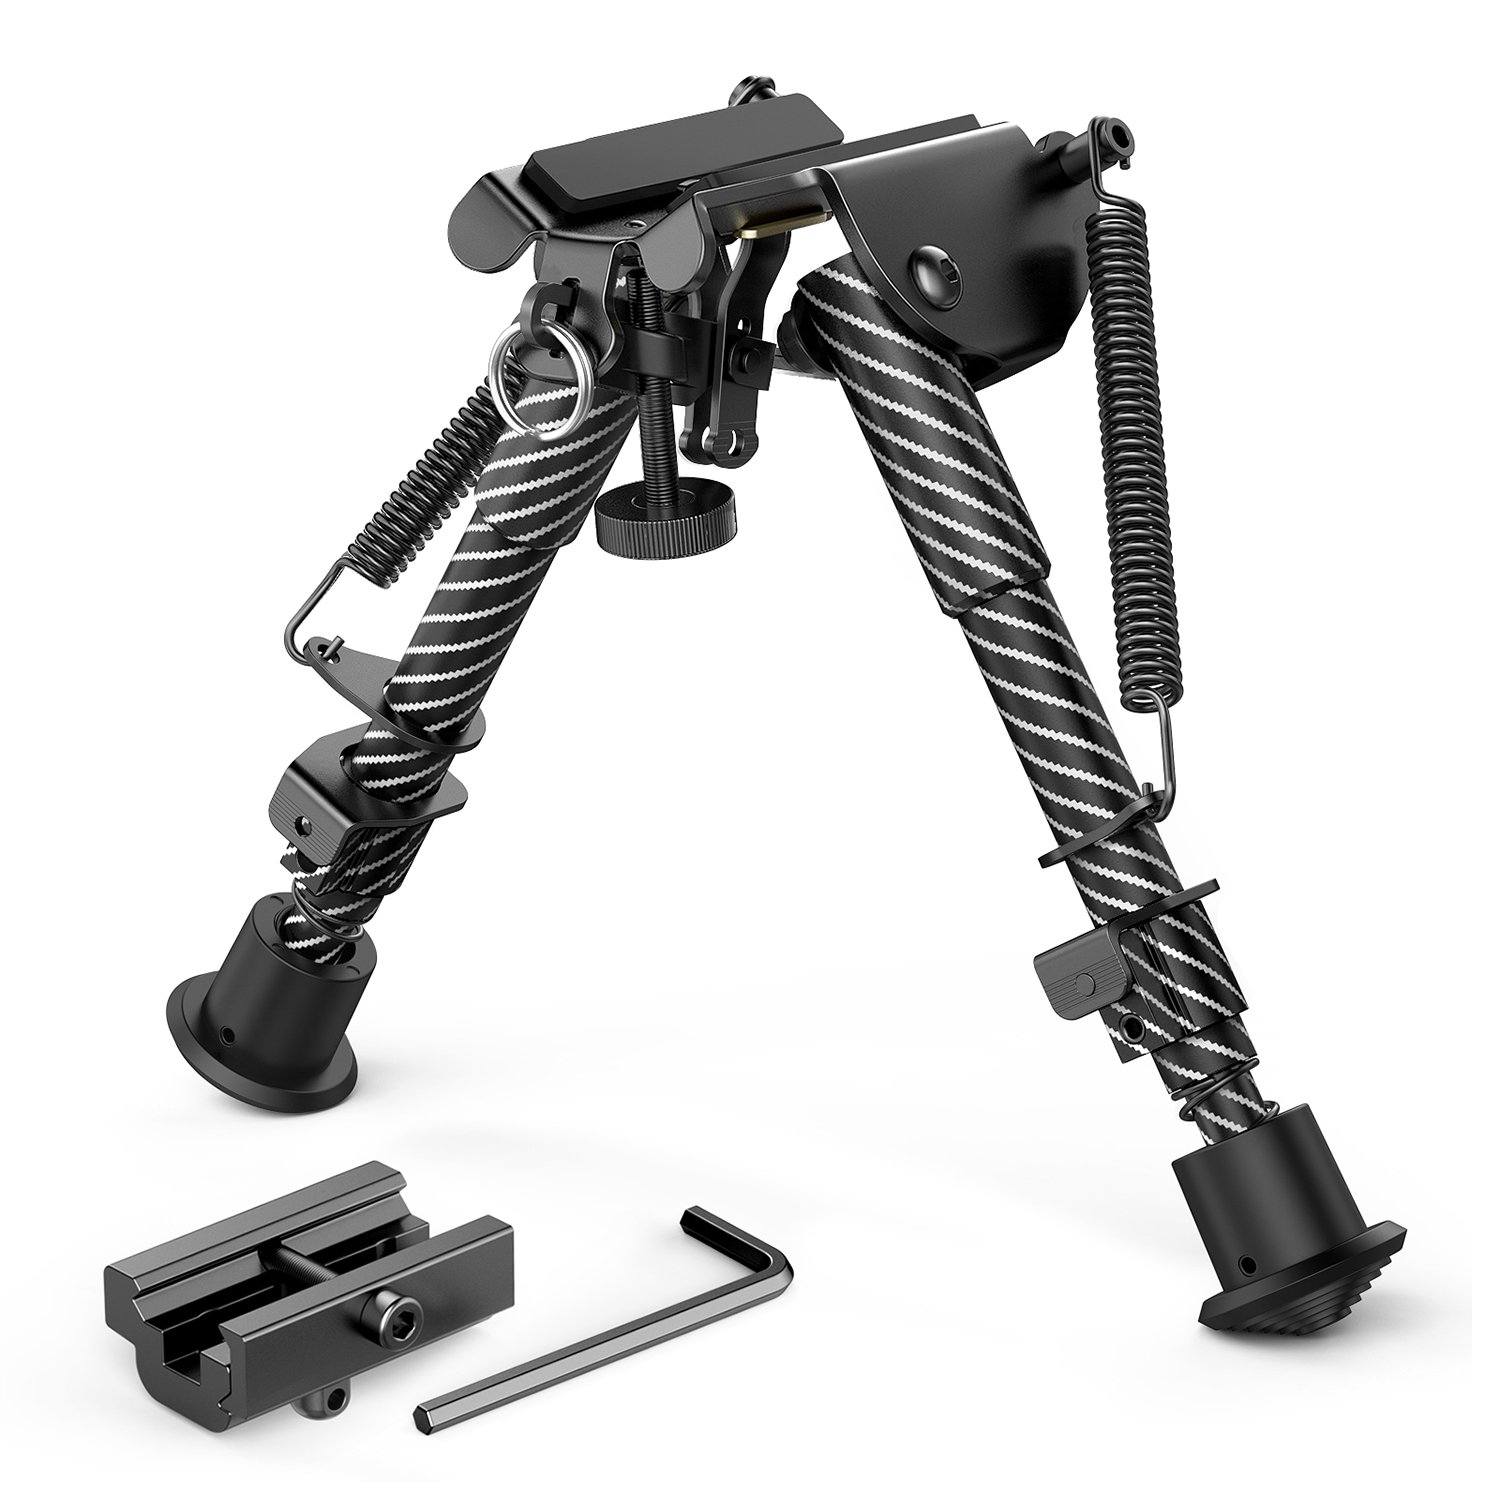 XAegis Rifle Bipod 6-9 inch Adjustable Spring Return Bipod with 21mm Picatinny Mount Adapter for Rifle Gun Shooting Hunting